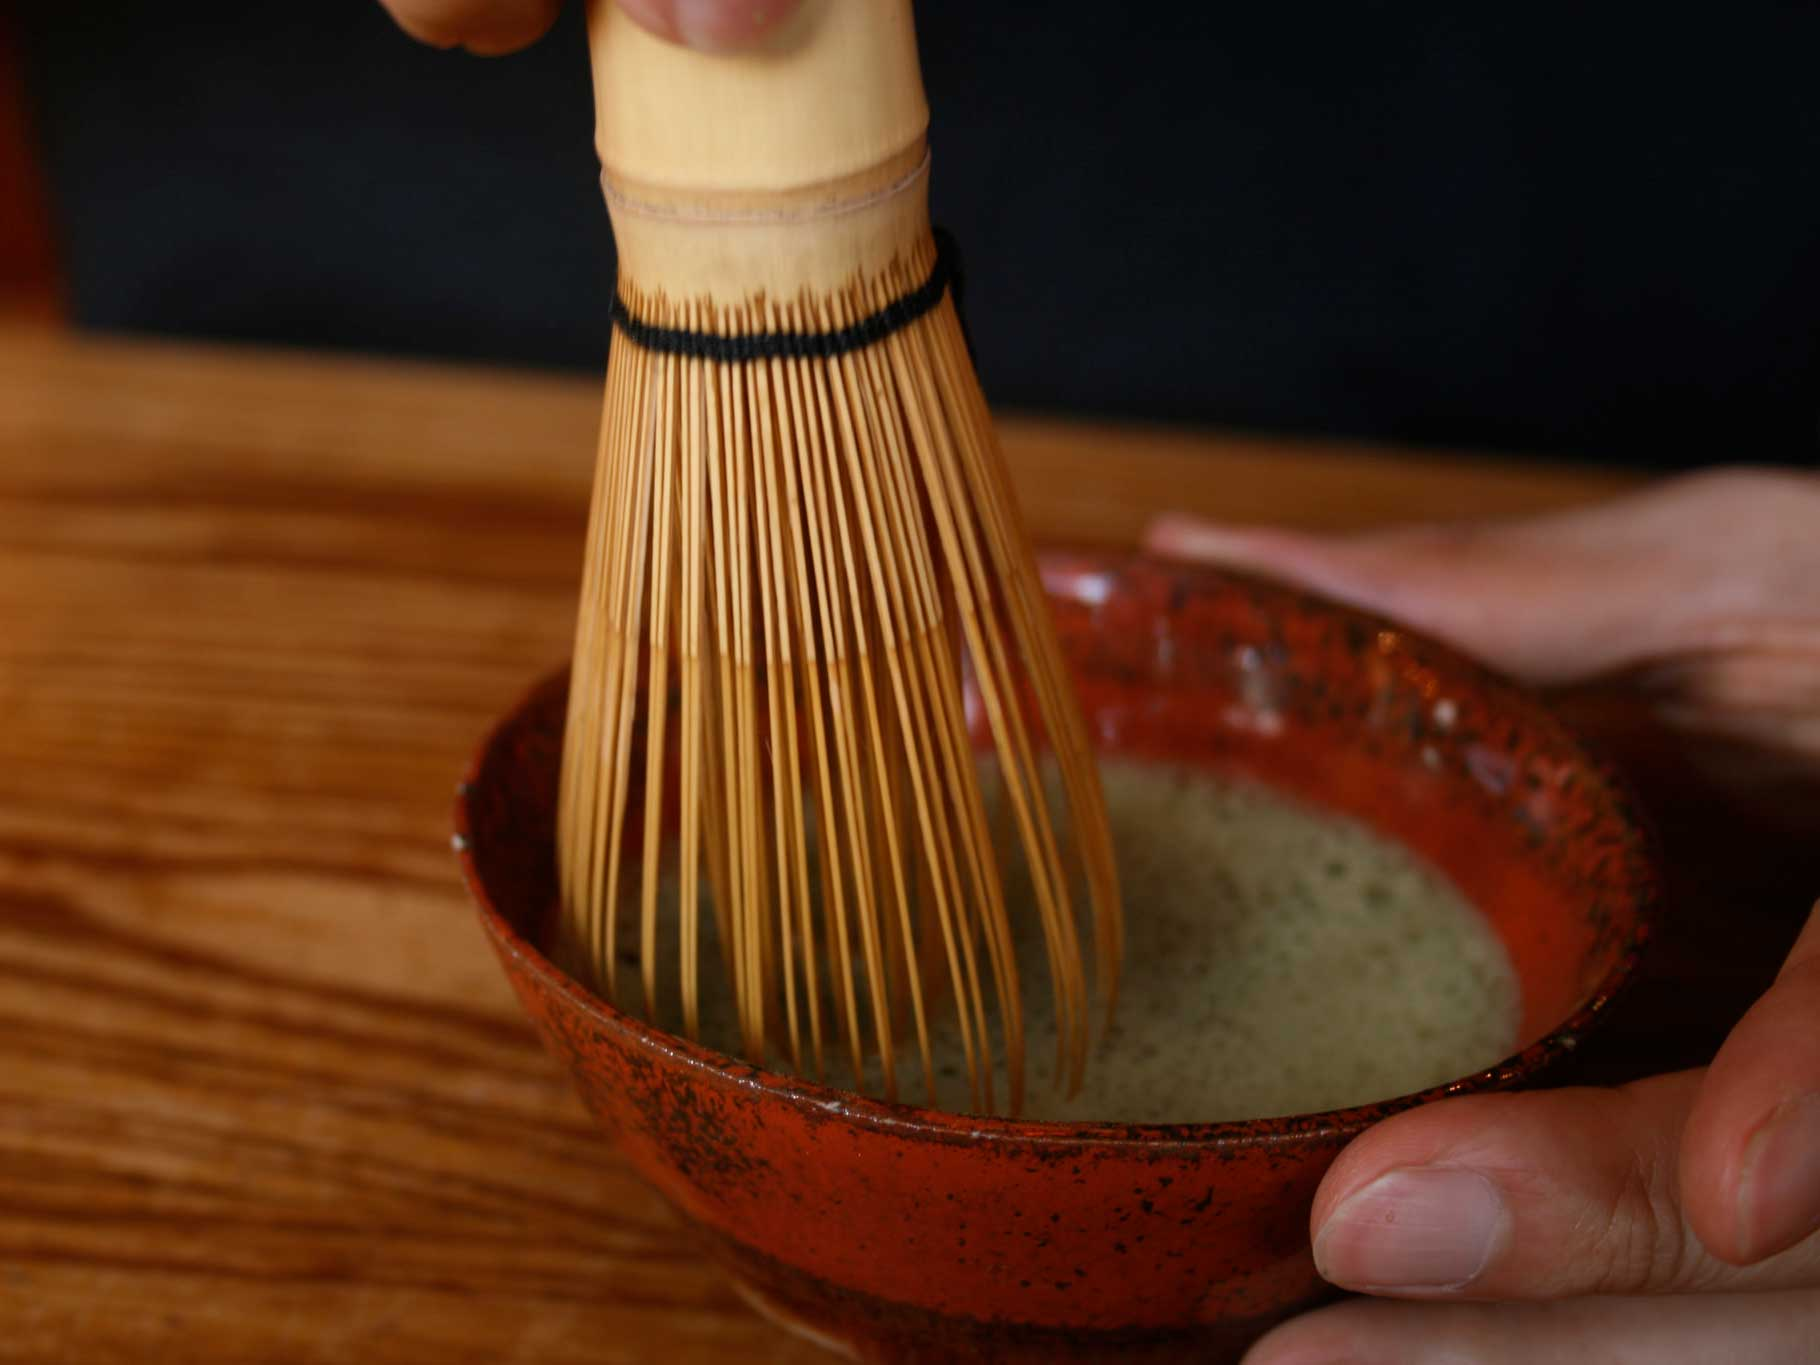 The Mesmerizing, Centuries-Old Process of Making Bamboo Matcha Whisks by Hand